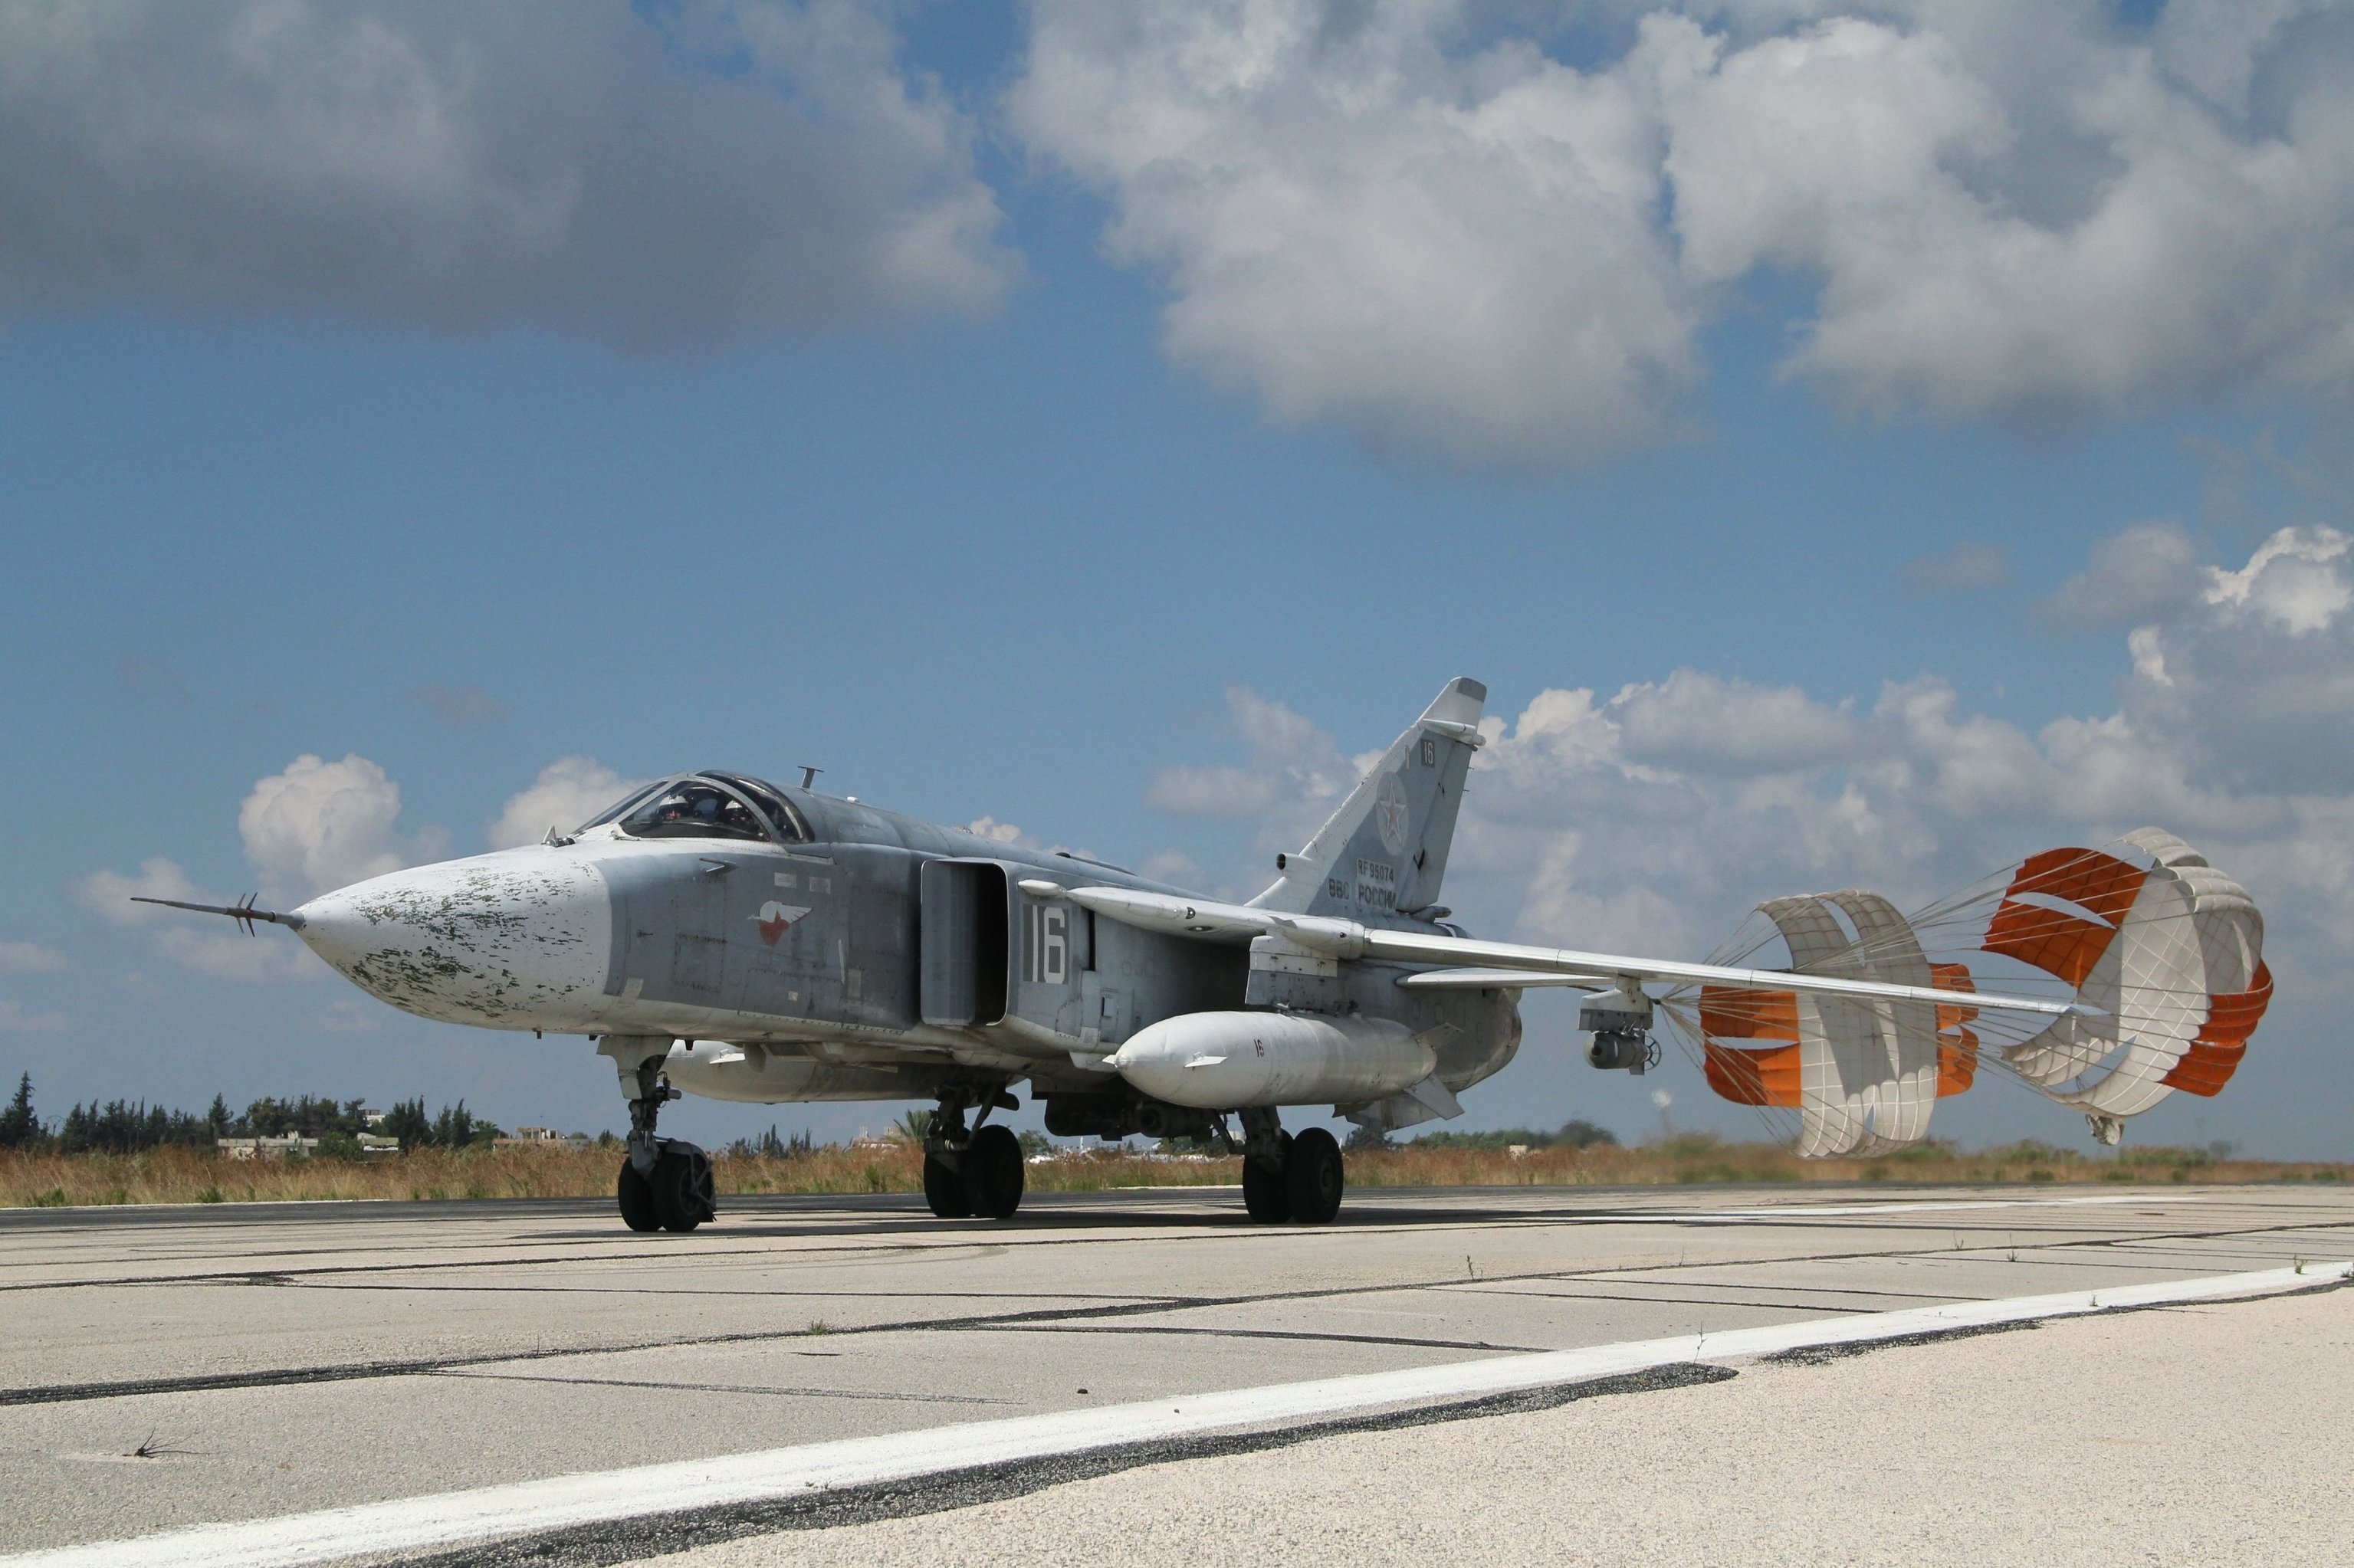 A Russian Su-24 front-line bomber jet lands at Latakia airport, Syria